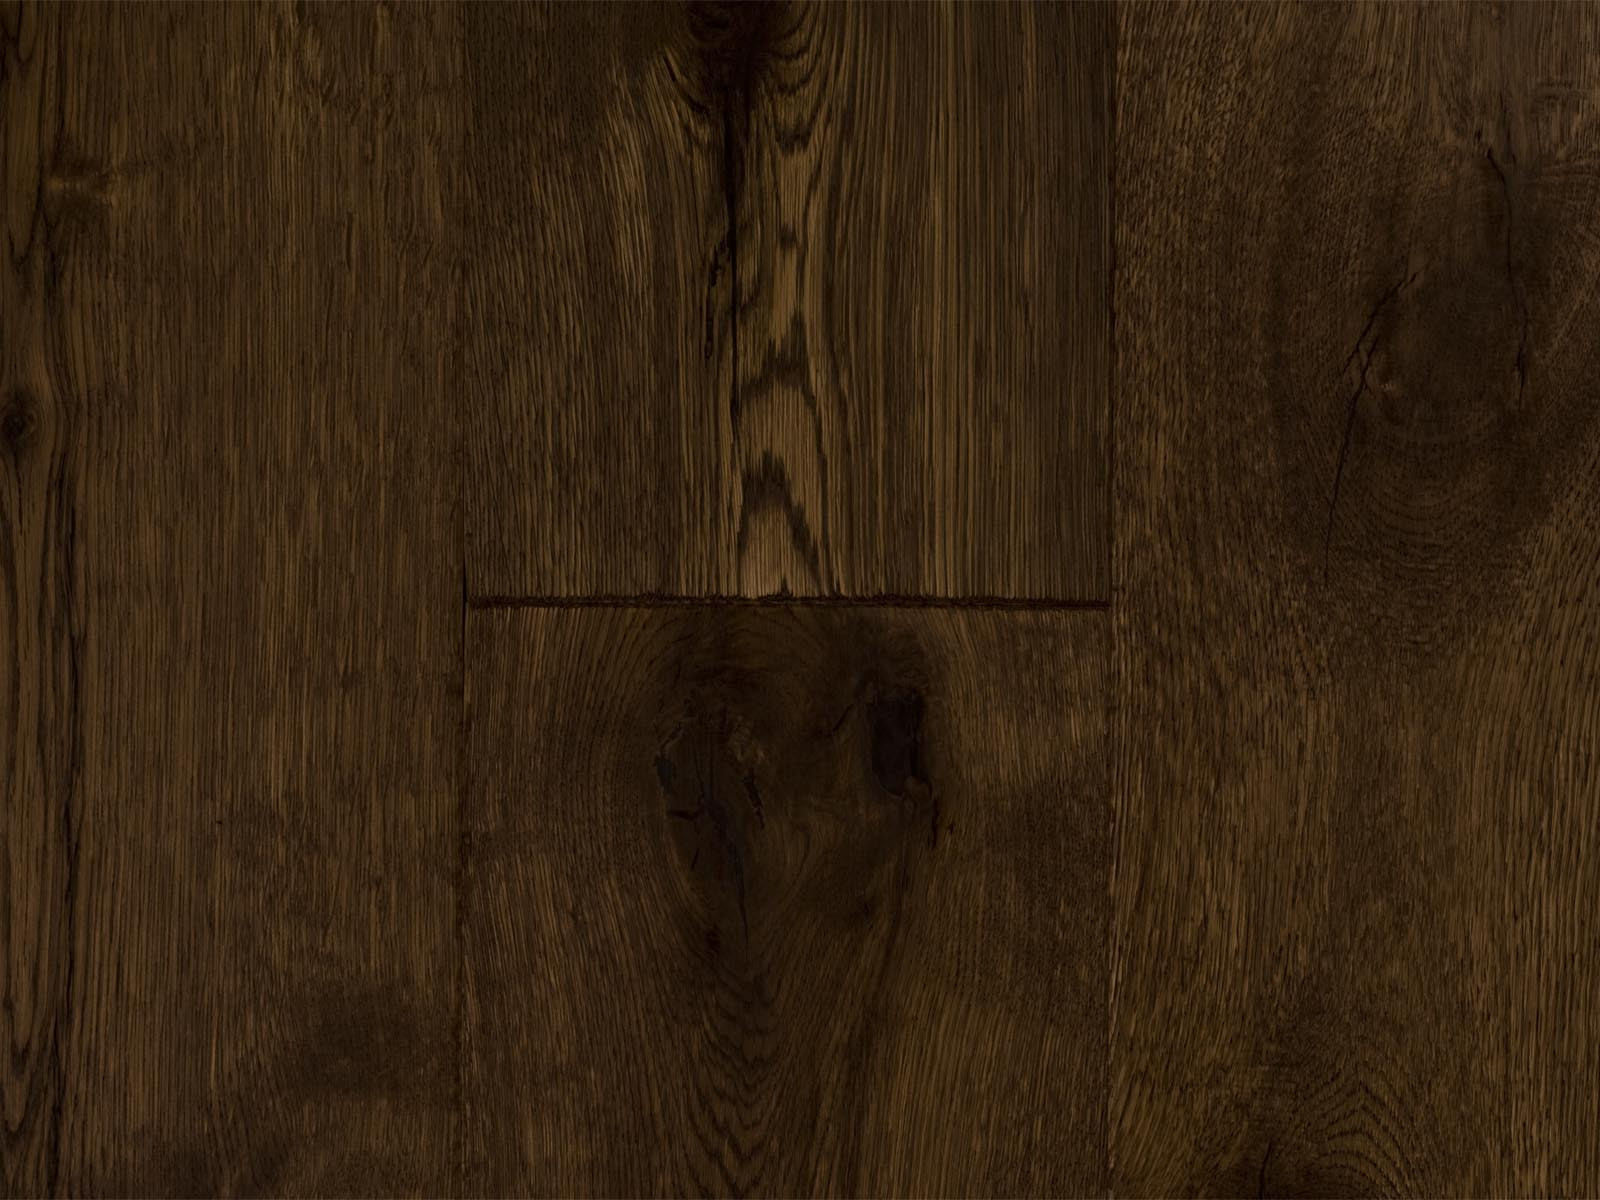 armstrong acacia hardwood flooring of provenza hardwood flooring houston tx discount premium wood floors for windsor european oak